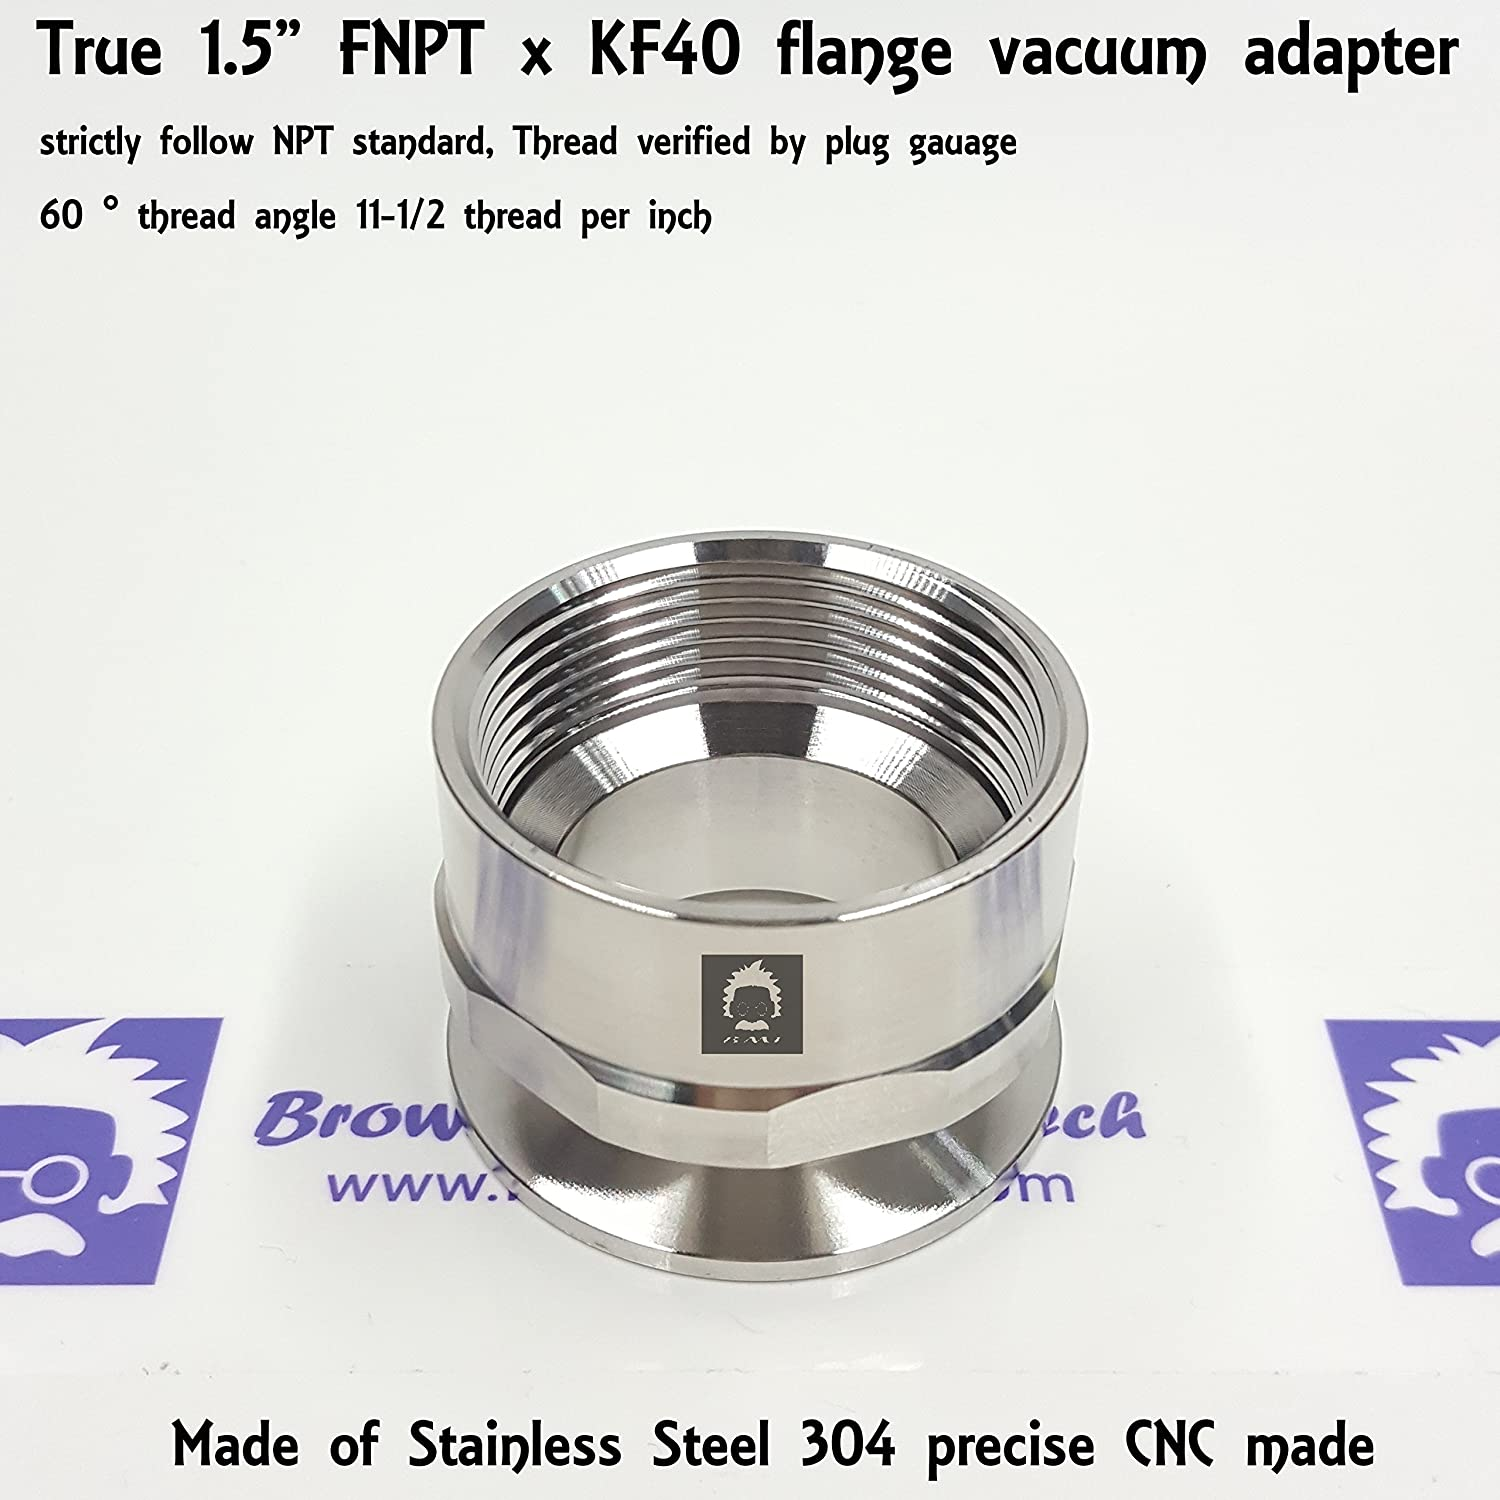 """_BMT_ True 1-1/2"""" or 1.5"""" FNPT X KF40 Flange vacuum adapter, made of SS304, strictly follow NPT standard, 11-1/2 threads per inch, 60° thread angle"""